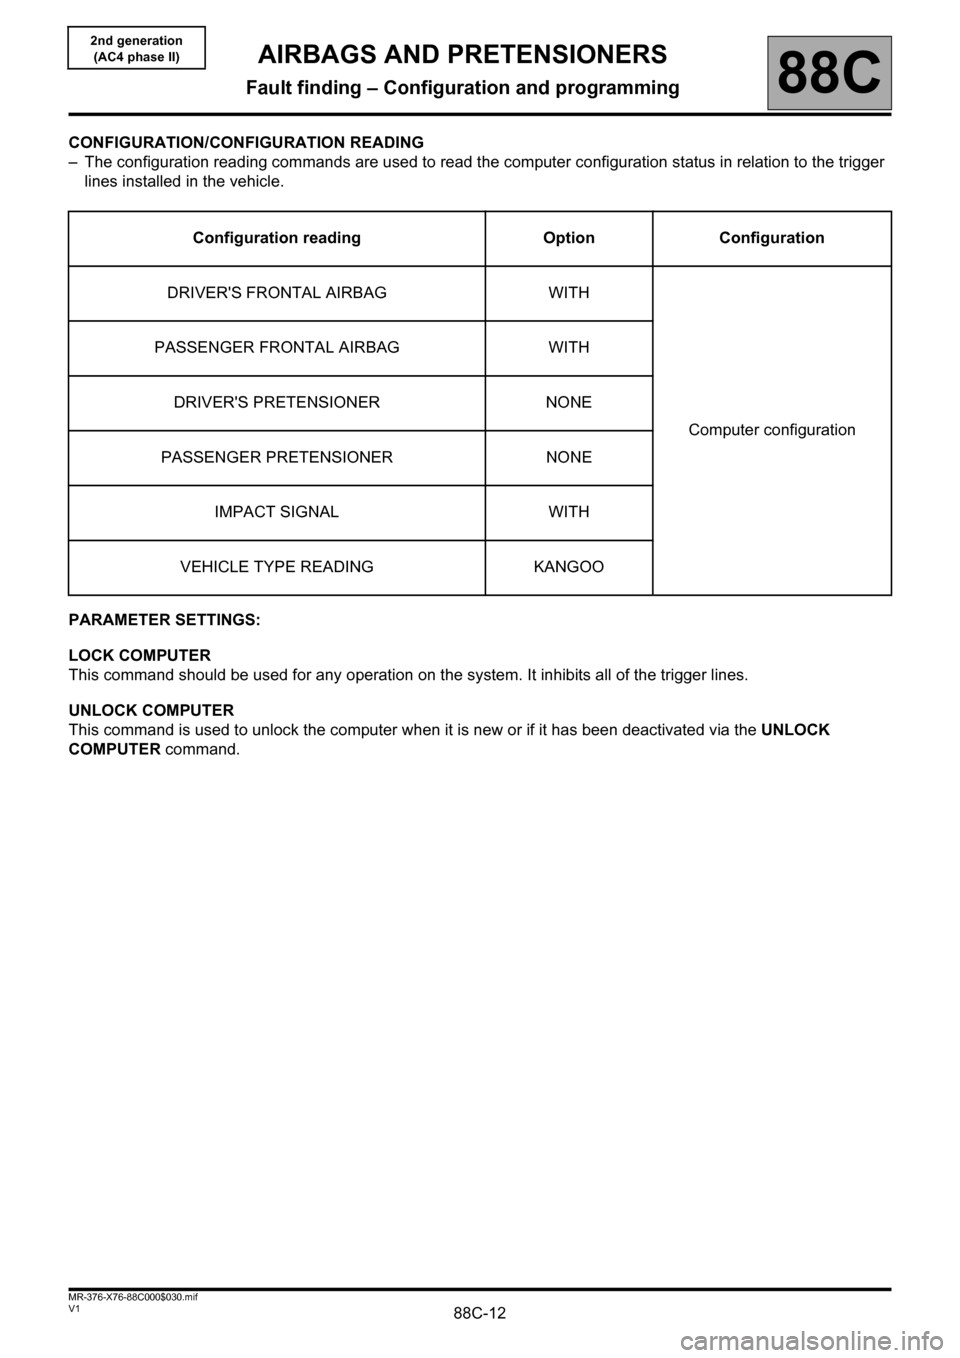 RENAULT KANGOO 2013 X61 / 2.G Air Bags AC4 And Pretensioners Workshop Manual, Page 12